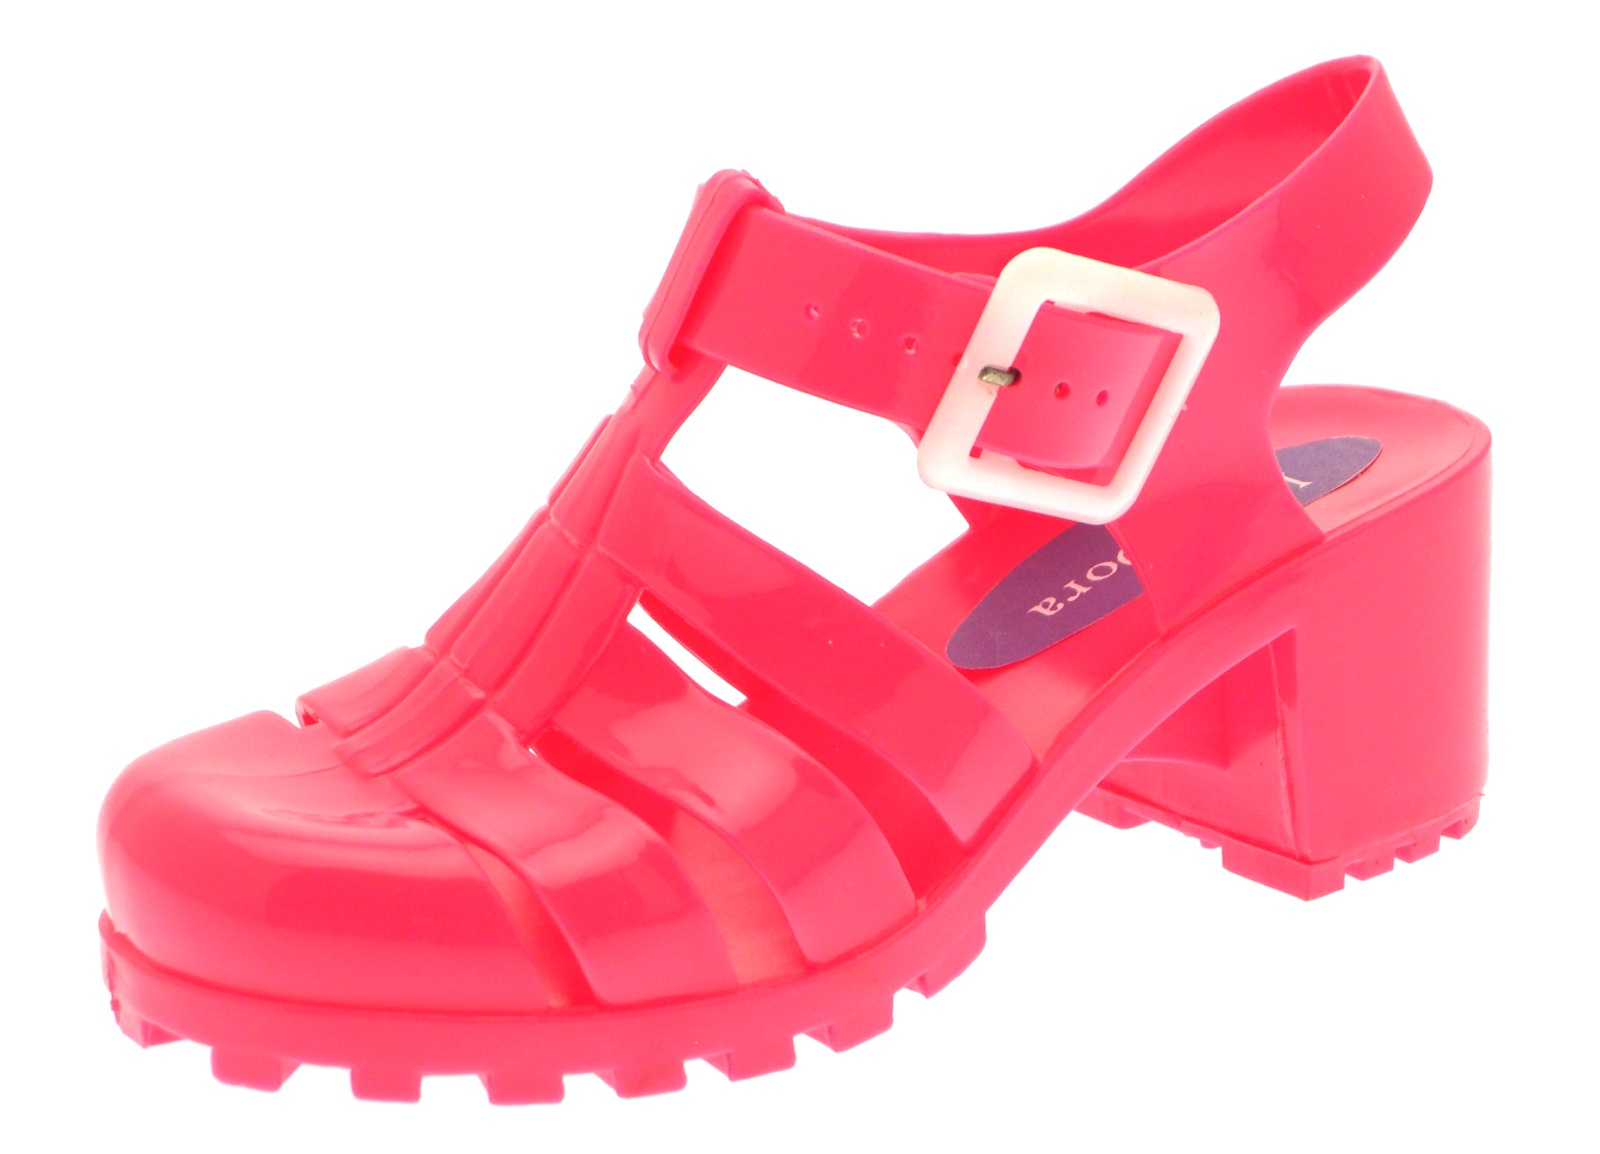 beatbox provides various mini melissa butterfly kids shoes children jelly sandals soft bottom princess girl new summer girls sandals to satisfy your needs in summer. boys cheap boots for boys and buy online kids shoes, both cheap shoes for toddler boys are of top quality, comfortable and fashionable.